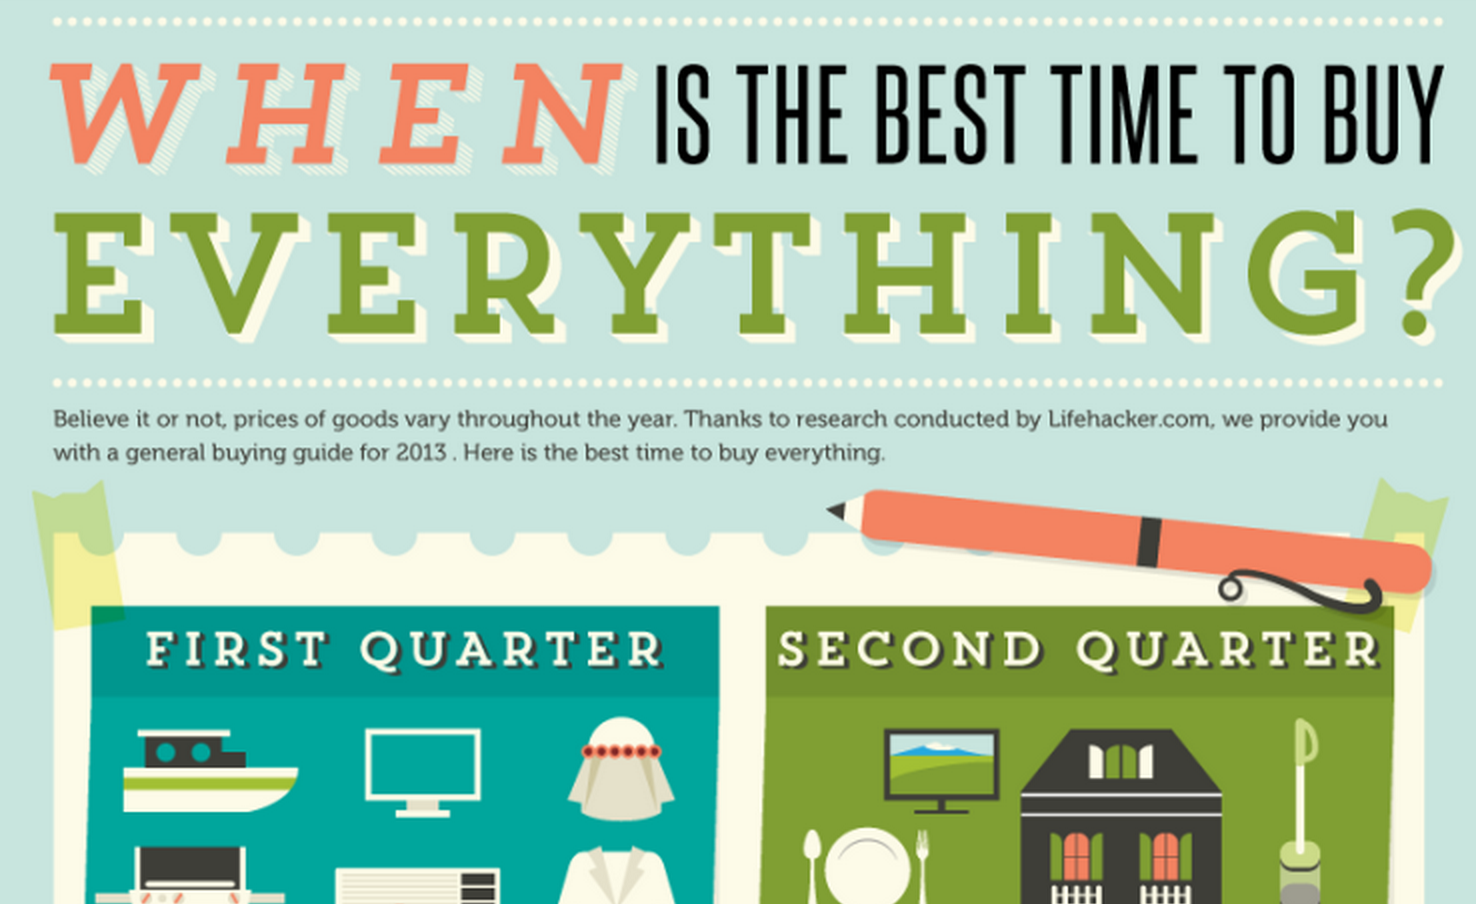 When-Is-the-best-time-to-buy-everything